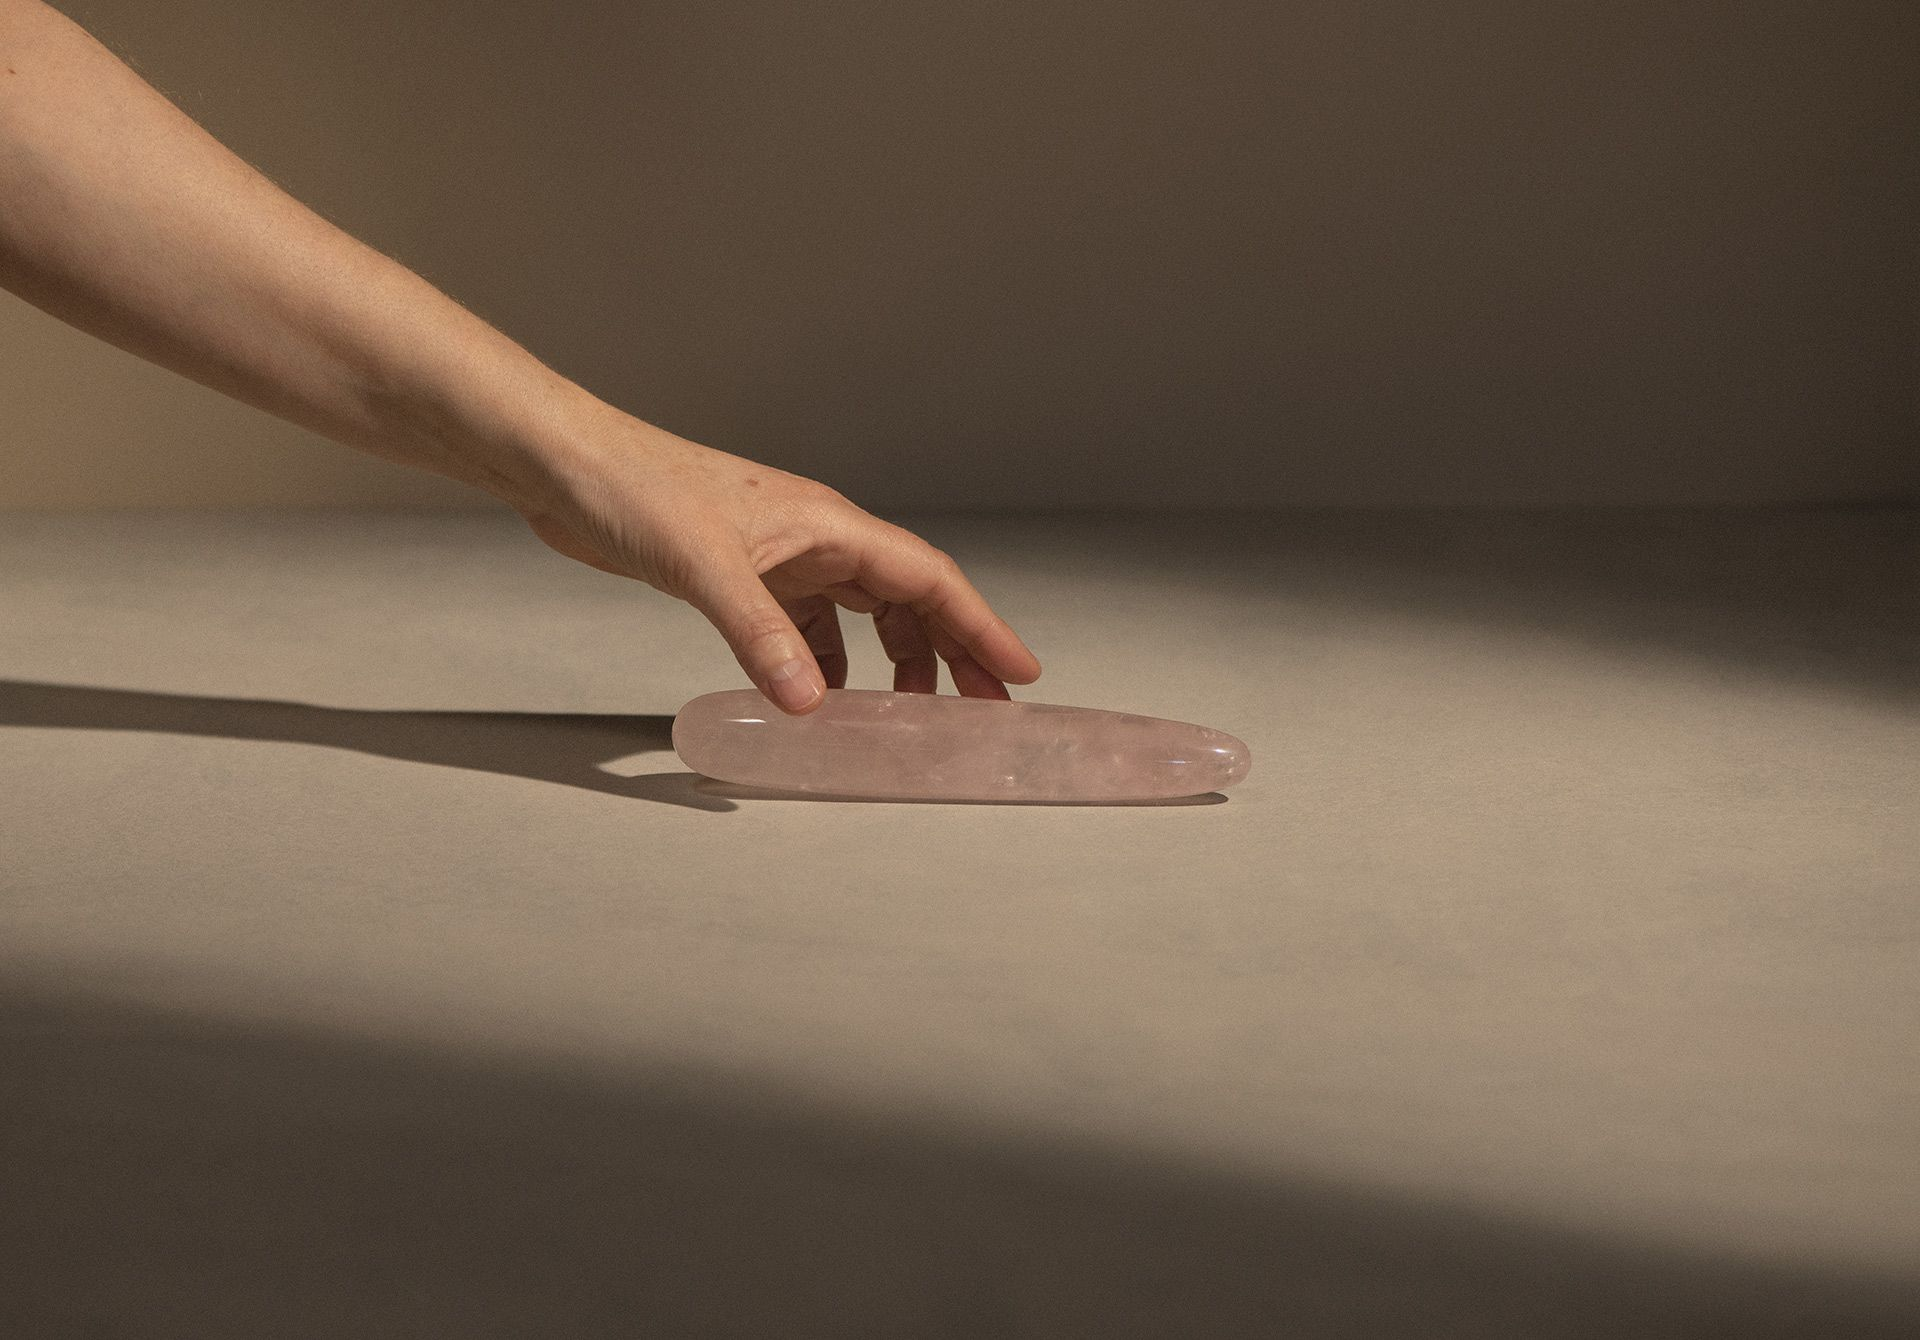 Rose quartz wand dildo on a beige background with a hand grabbing it.